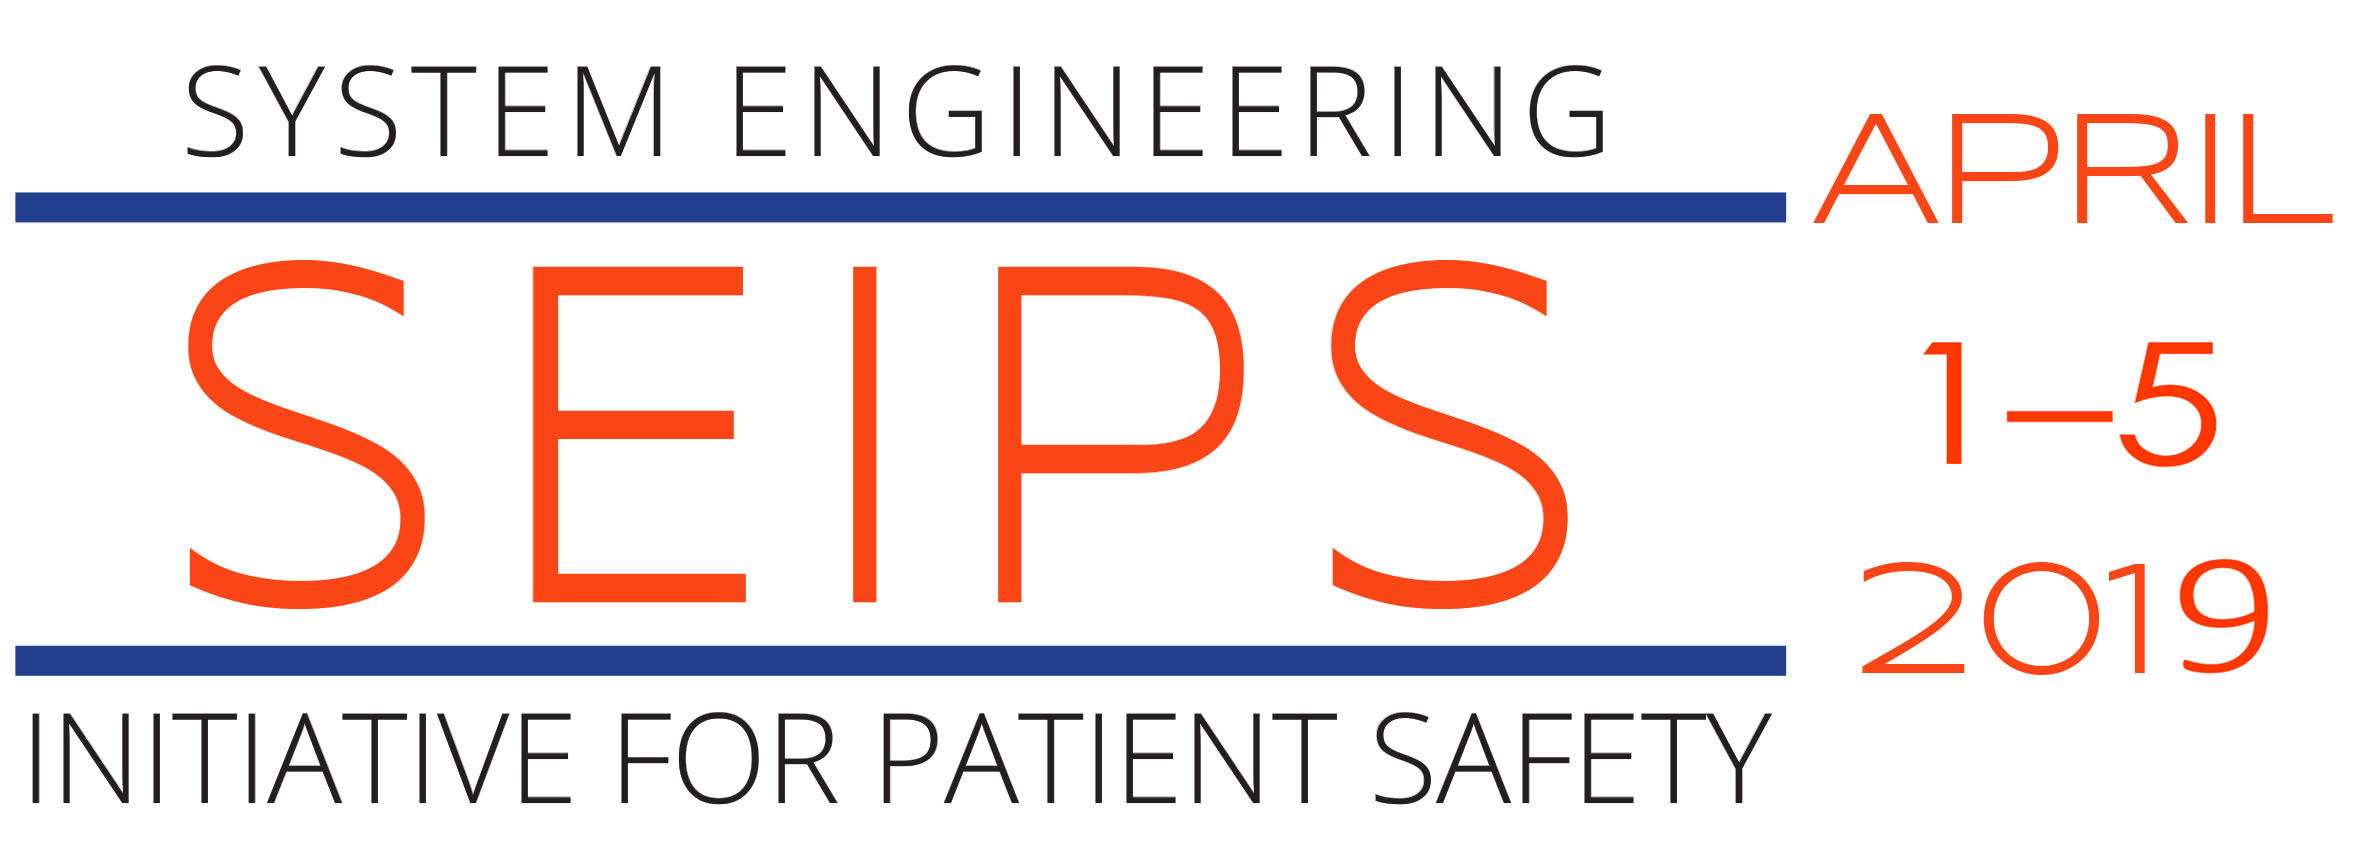 CANCELLED - 2019 System Engineering Initiative for Patient Safety